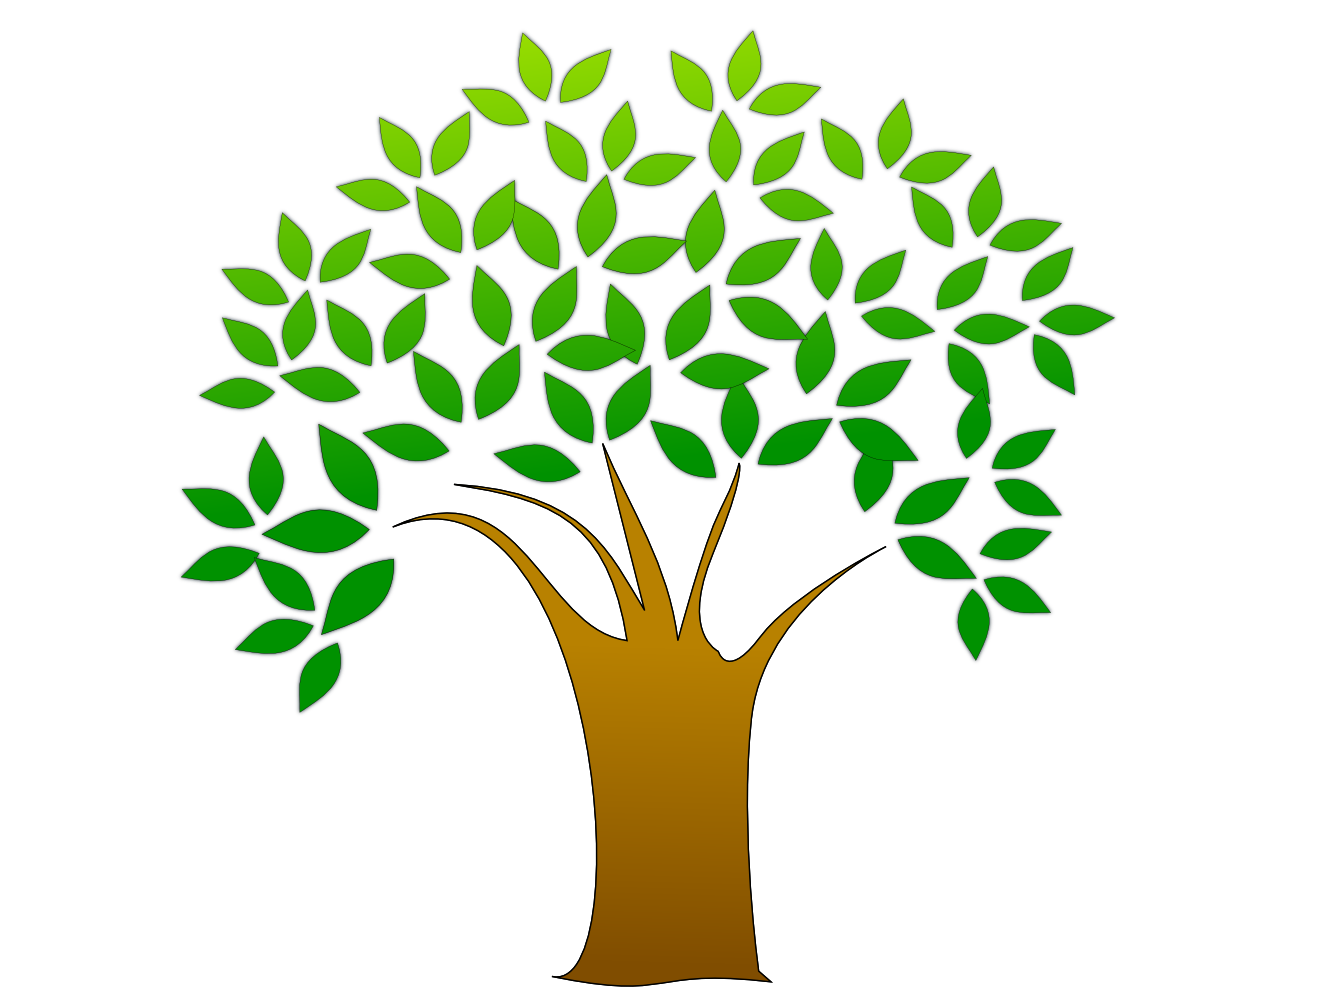 Clip Art Tree Outline | Clipart Panda - Free Clipart Images